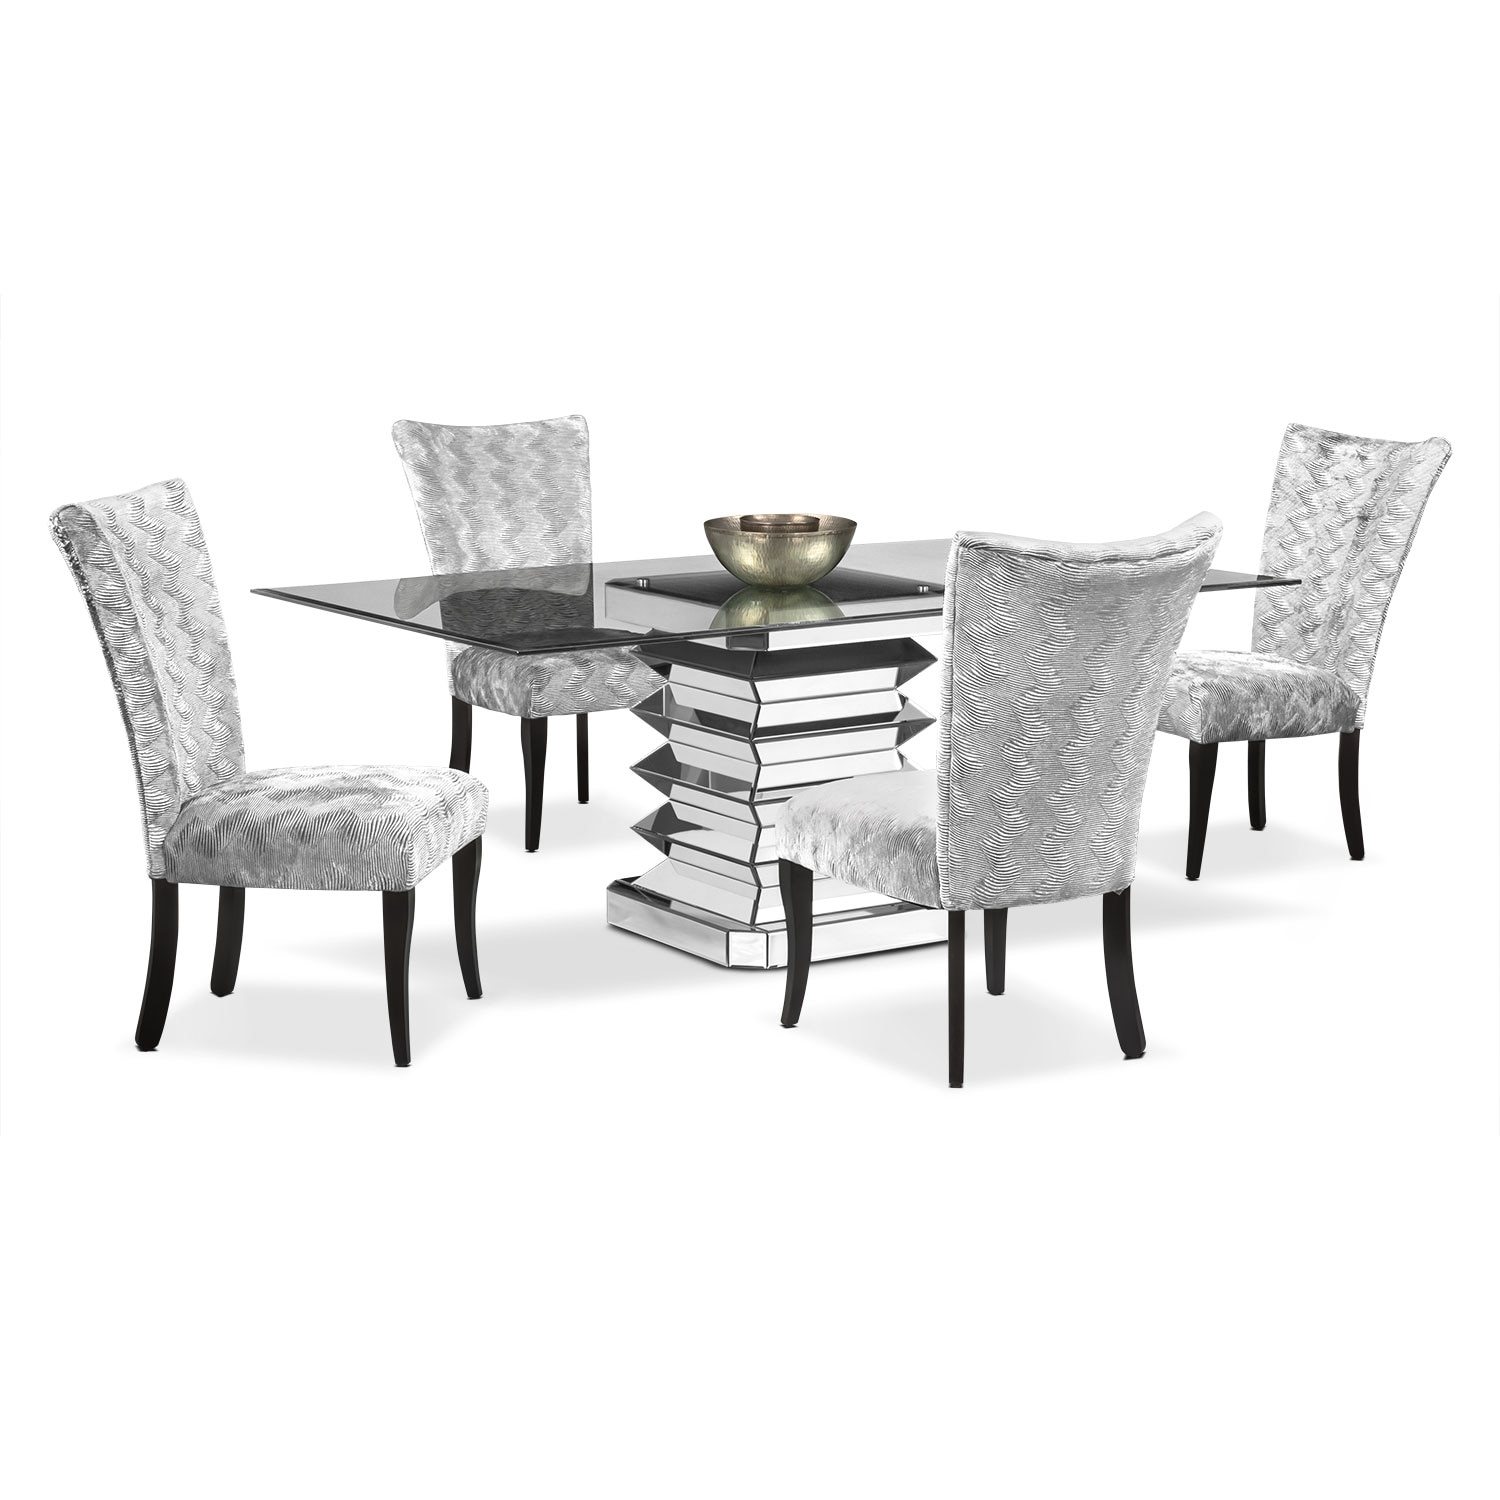 Vibrato Table and 4 Chairs - Silver